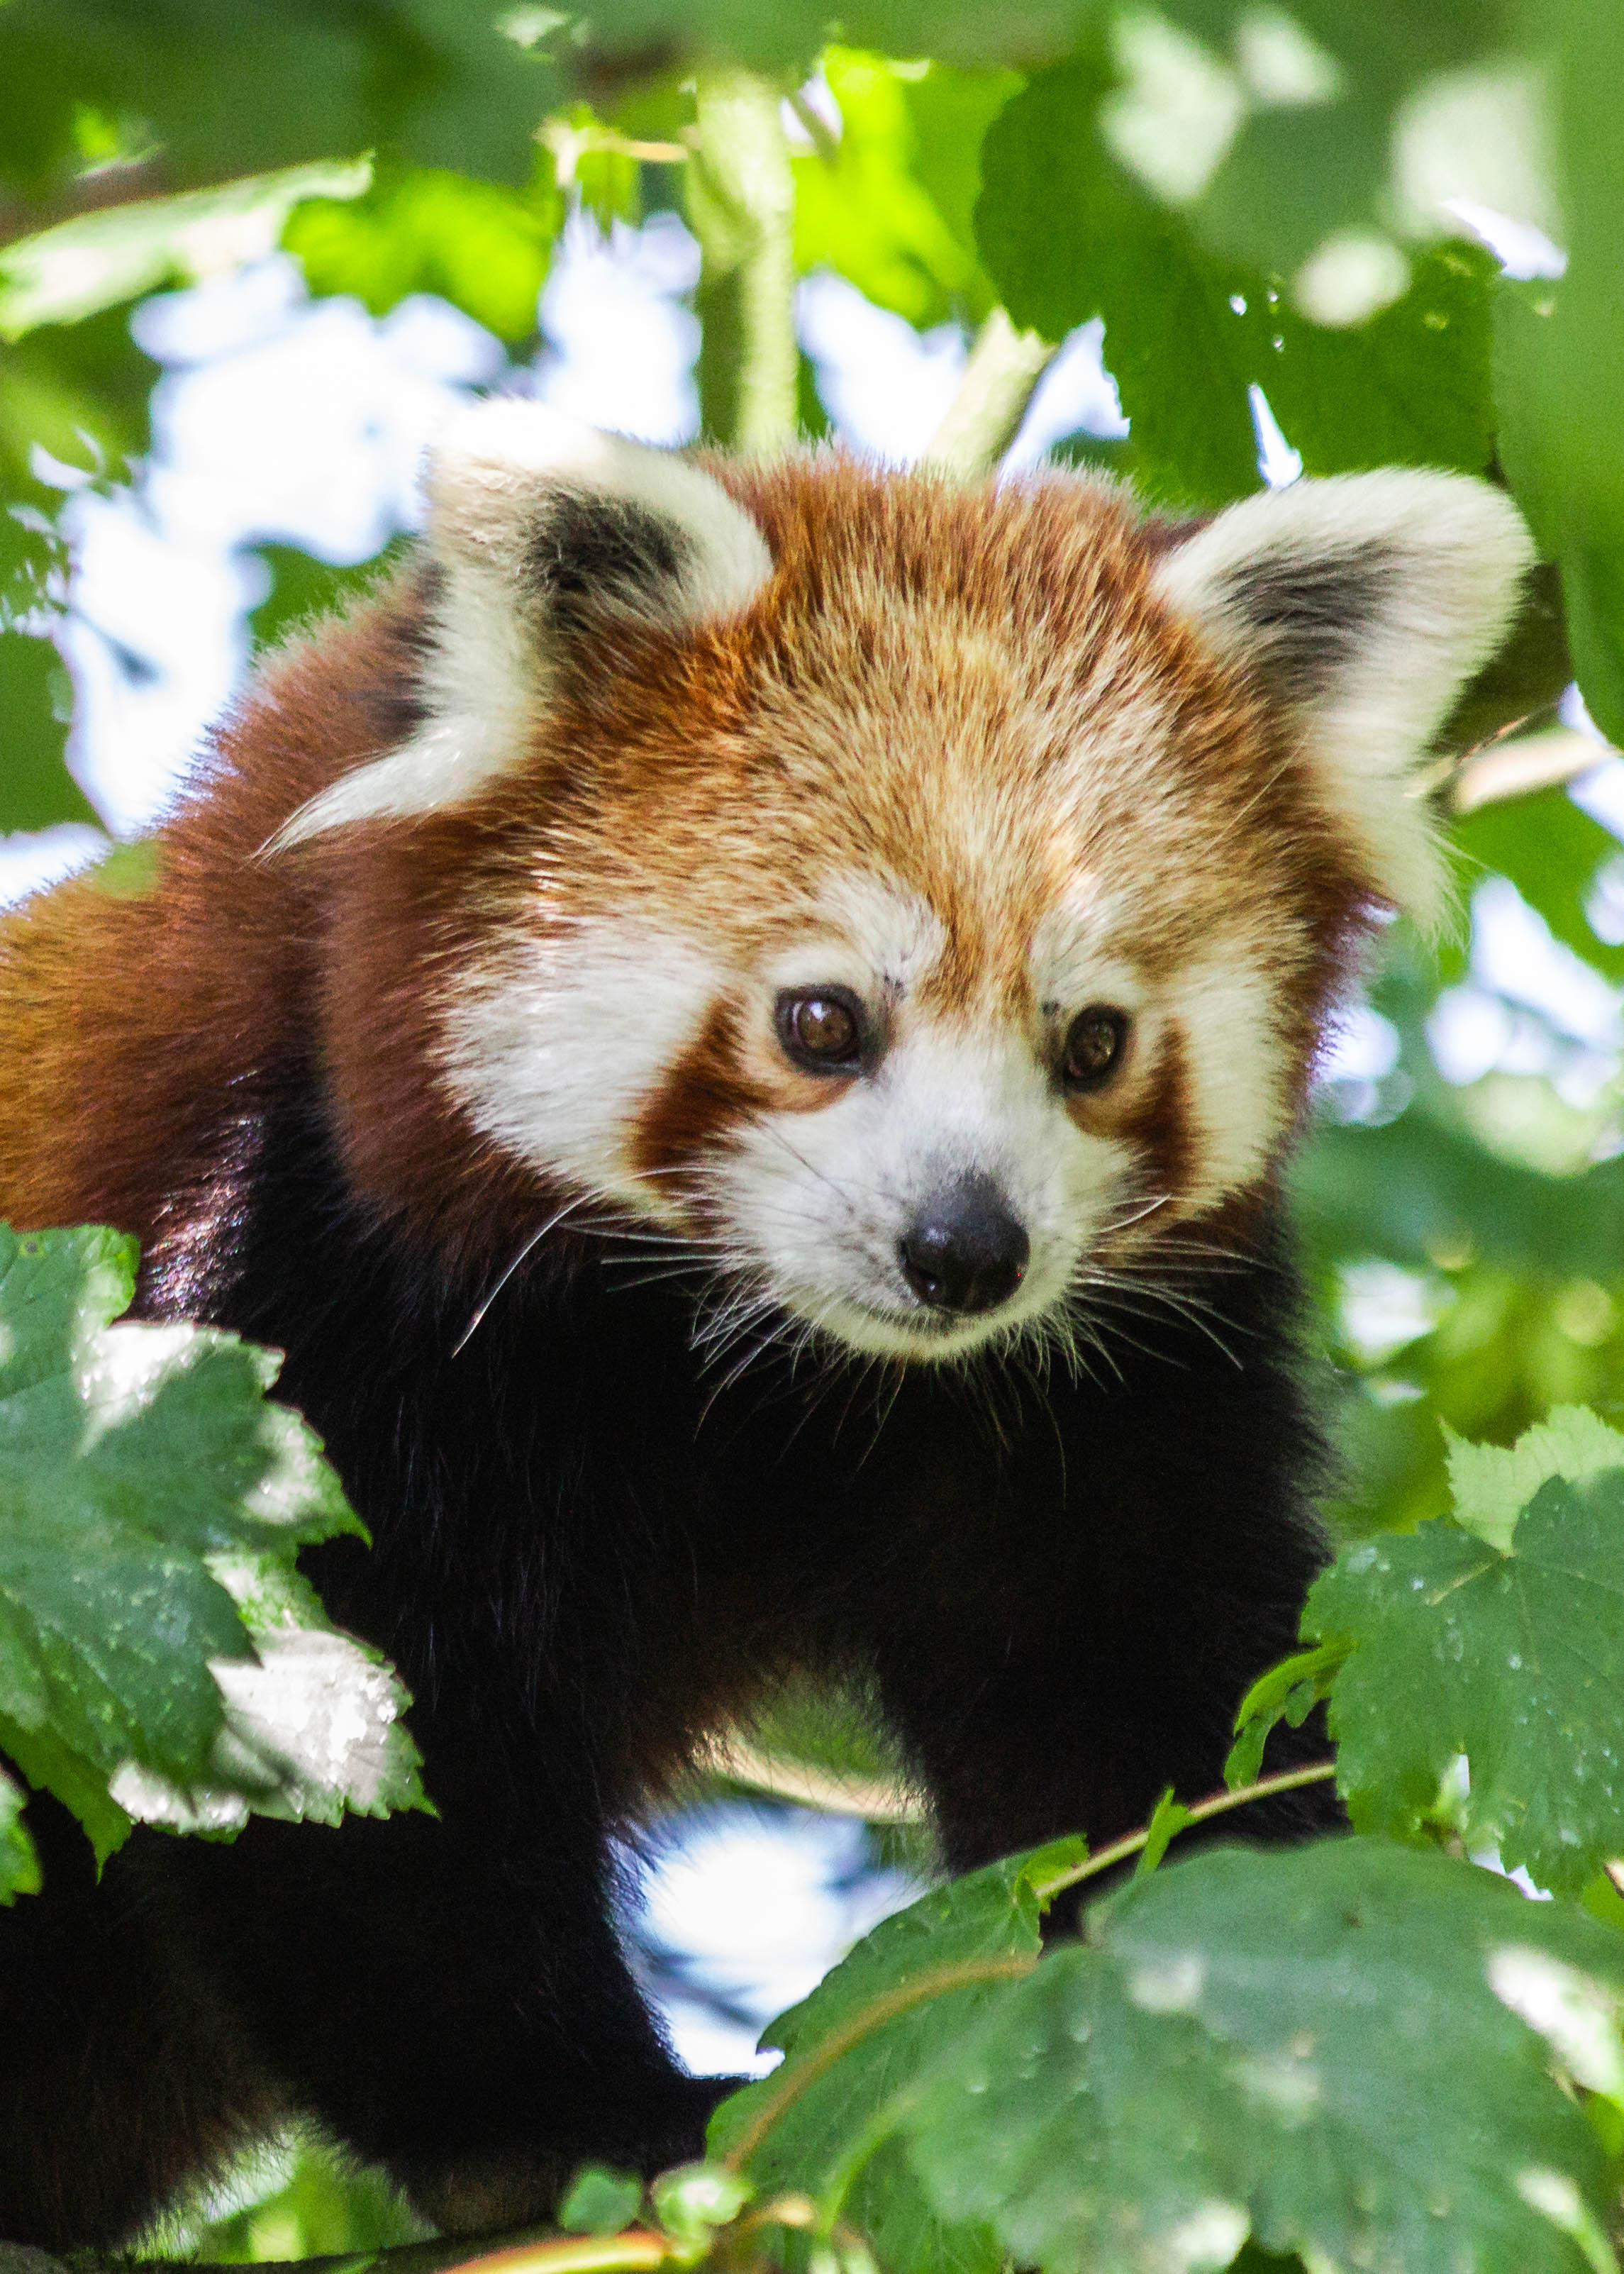 Image of: Endangered Species Red Pandas Go On Show At Manor Wildlife Park Western Telegraph Red Pandas Go On Show At Manor Wildlife Park Western Telegraph